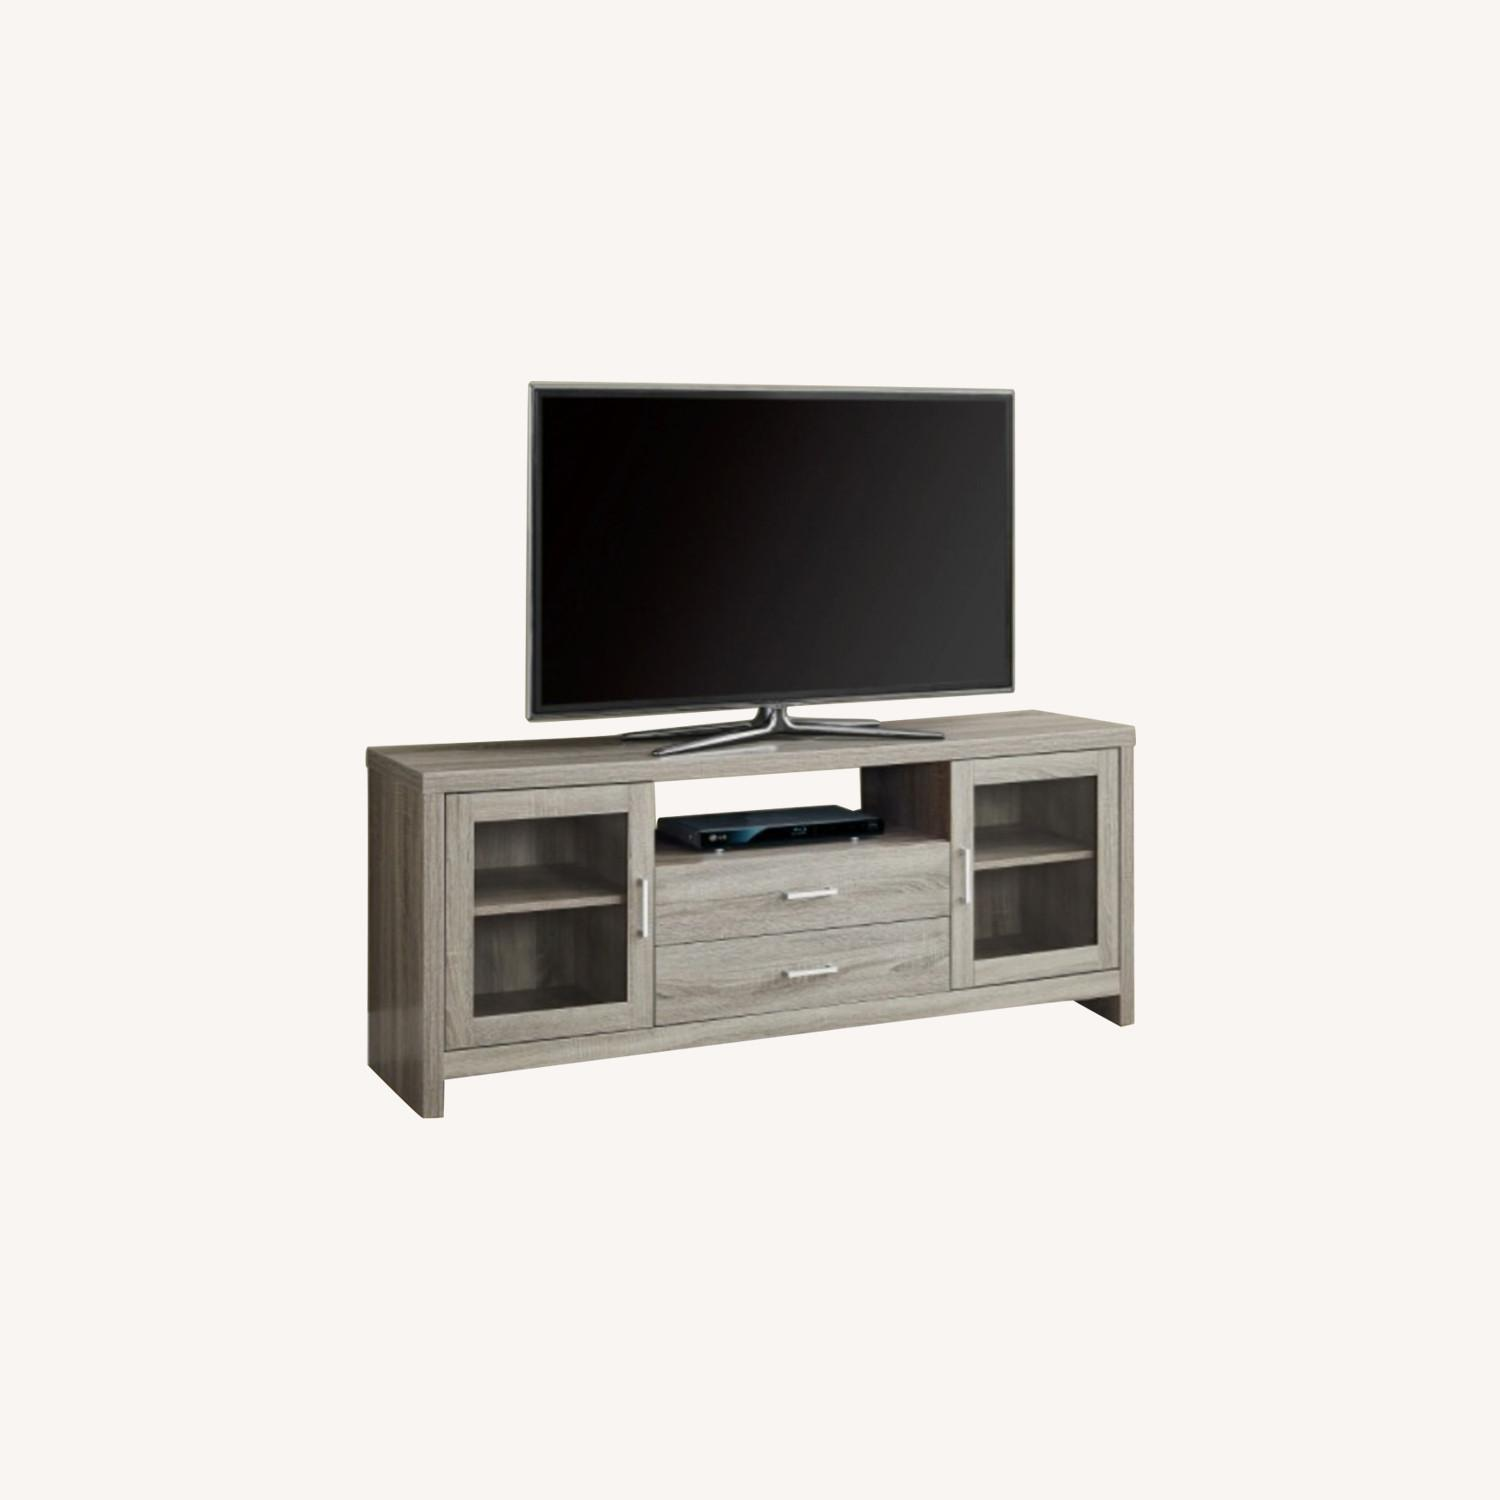 TV Stand with Storage - image-0